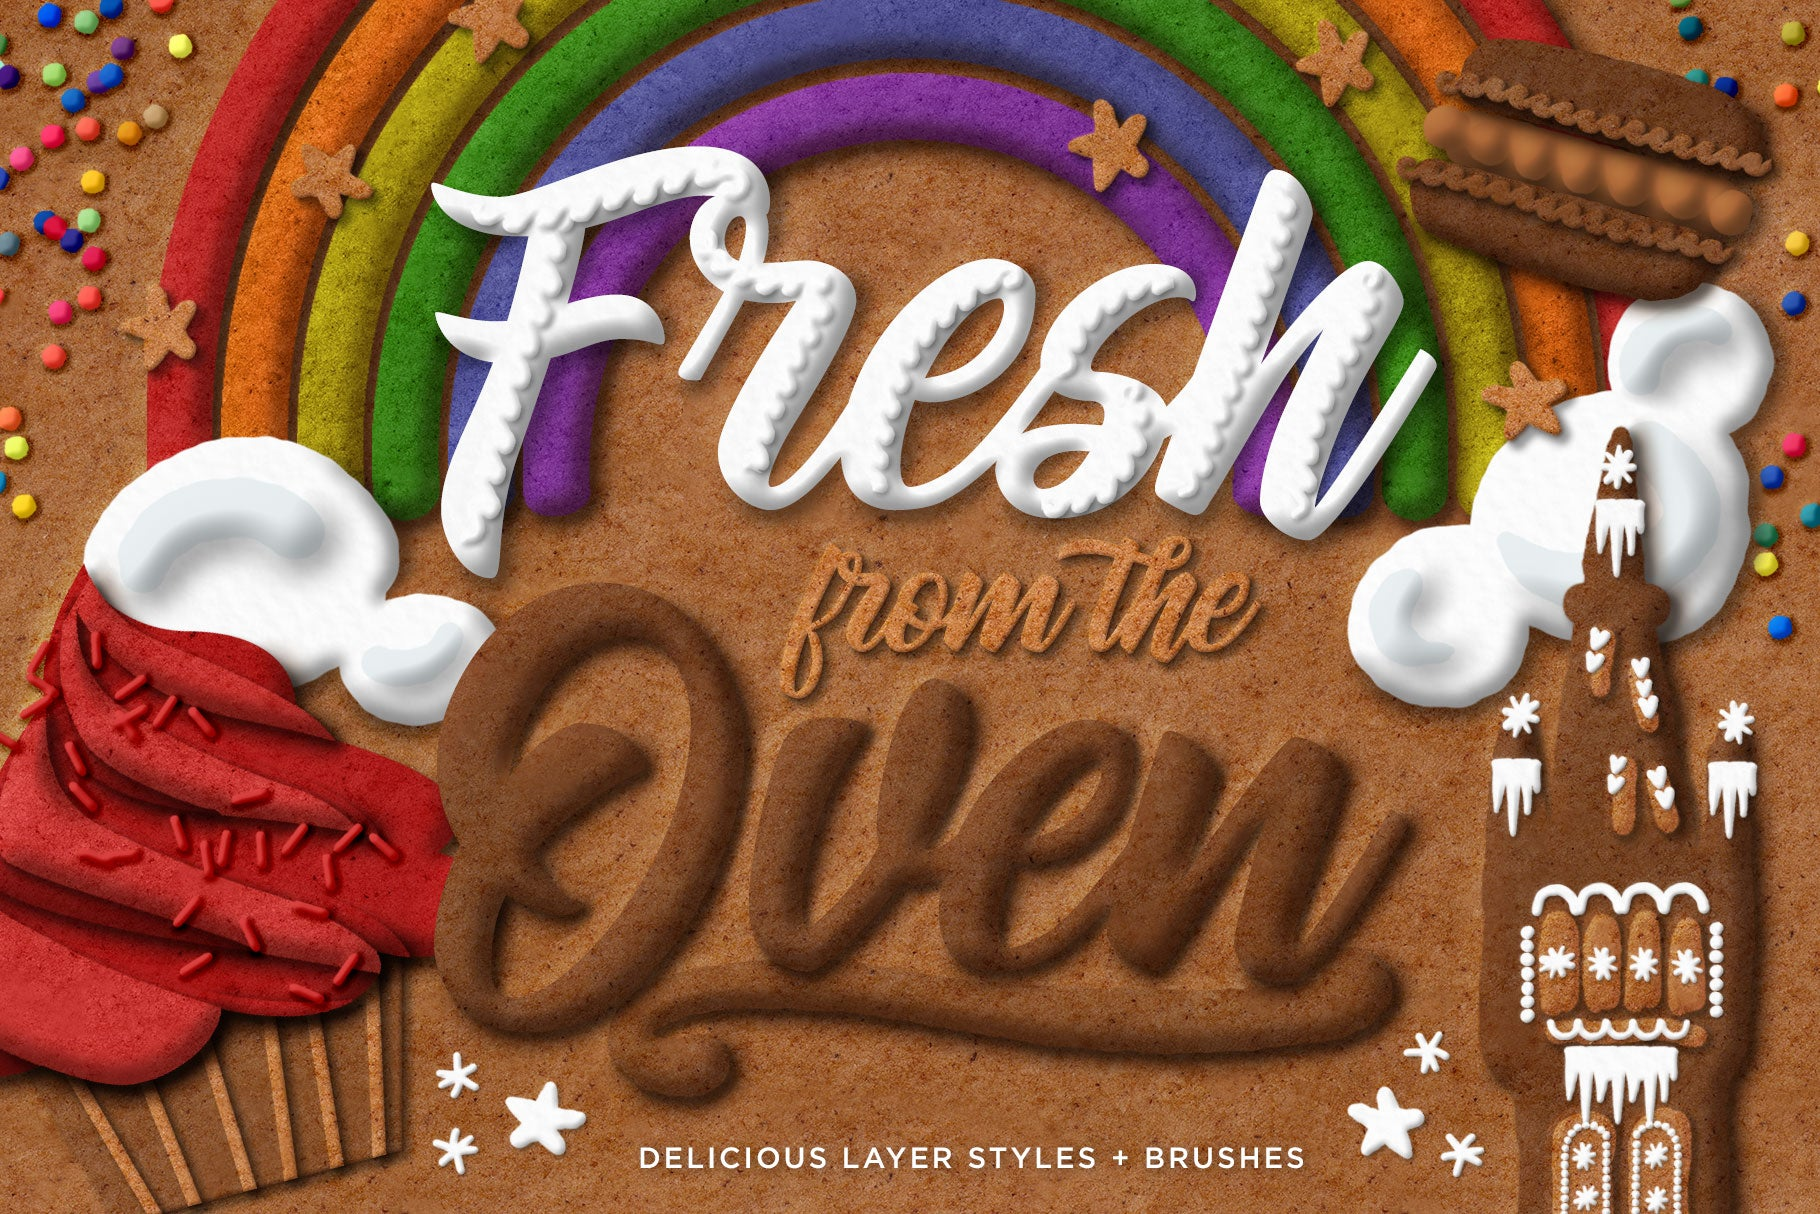 Gingerbread, Cookie, & Cake Graphic & Lettering Effects for Photoshop, cover image